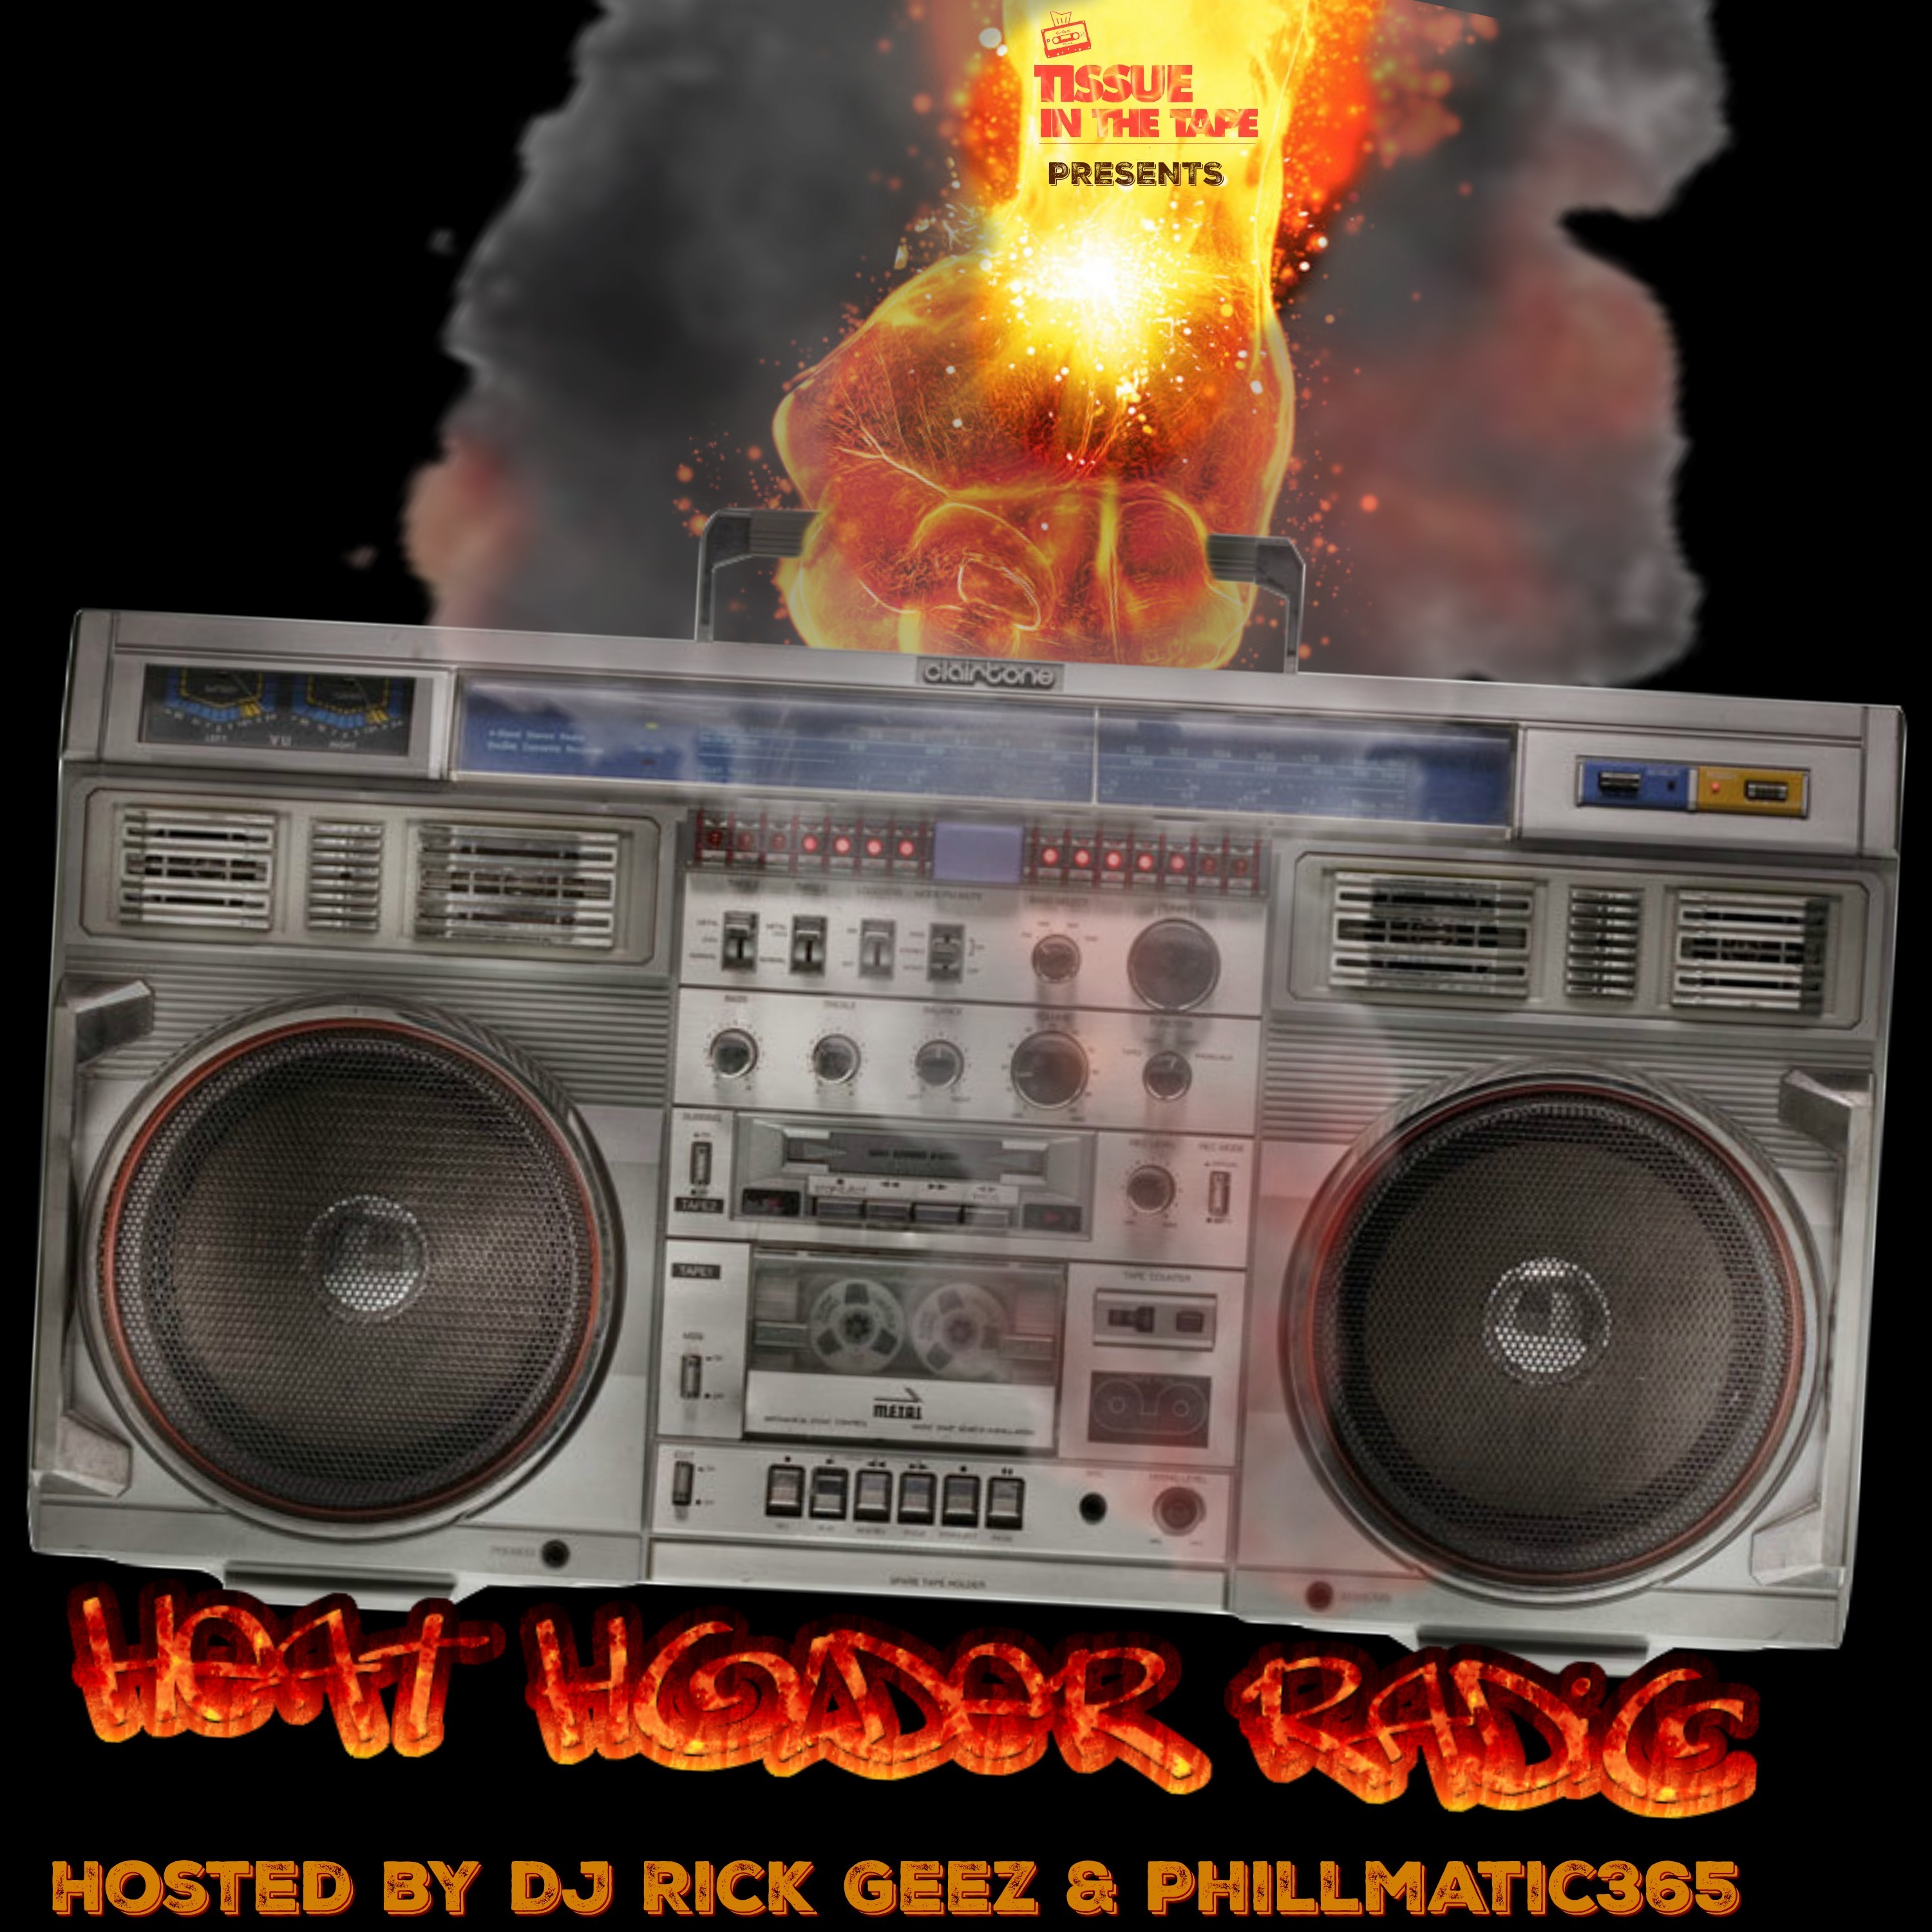 Tissue in The Tape Podcast MixCloud: HeatHolder Radio presented by Tissue in The Tape. Link Thumbnail | Linktree